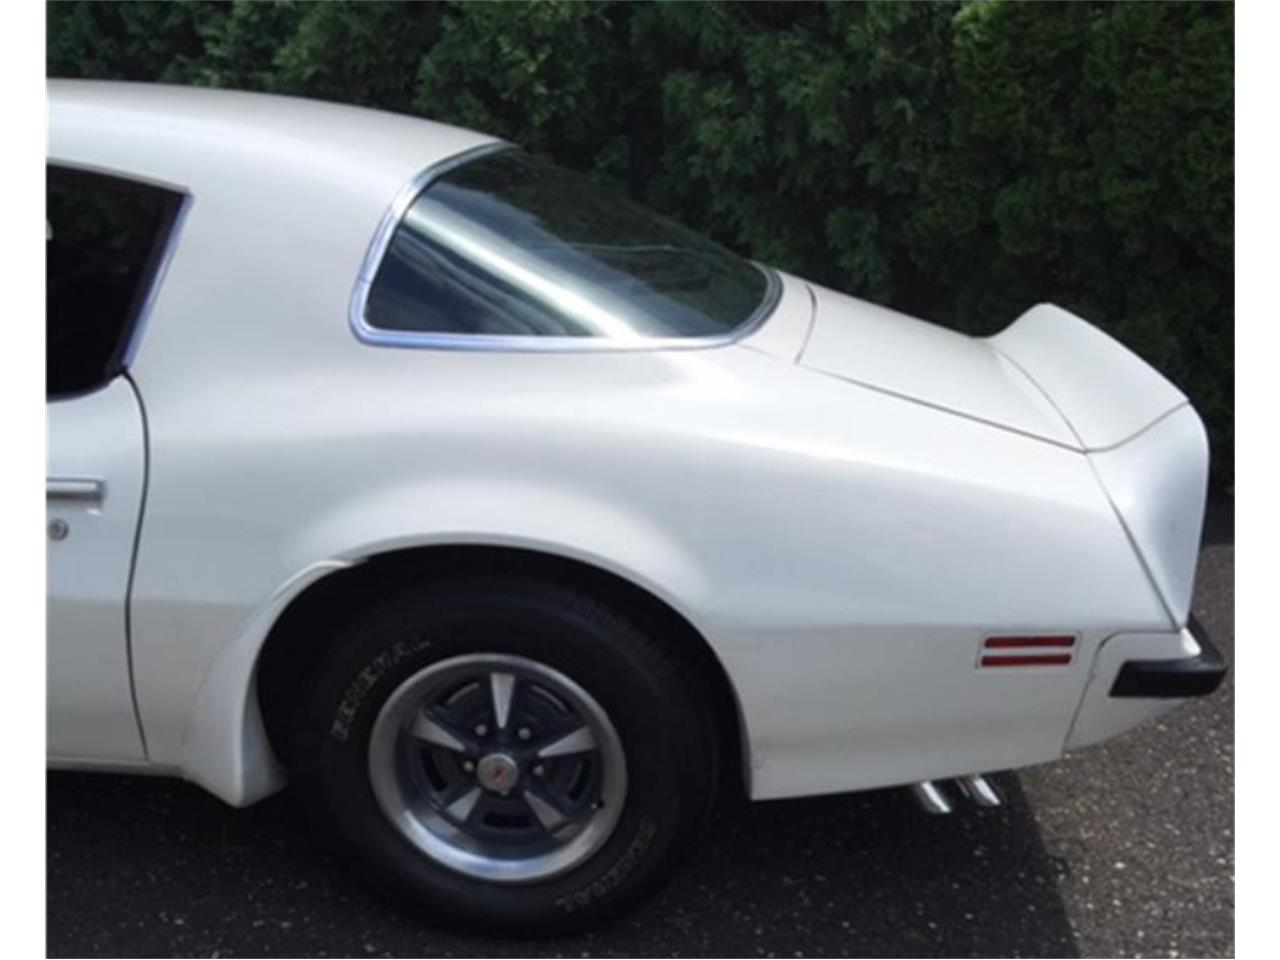 Large Picture of '75 Pontiac Firebird Trans Am located in Franklinville New Jersey - QKWB